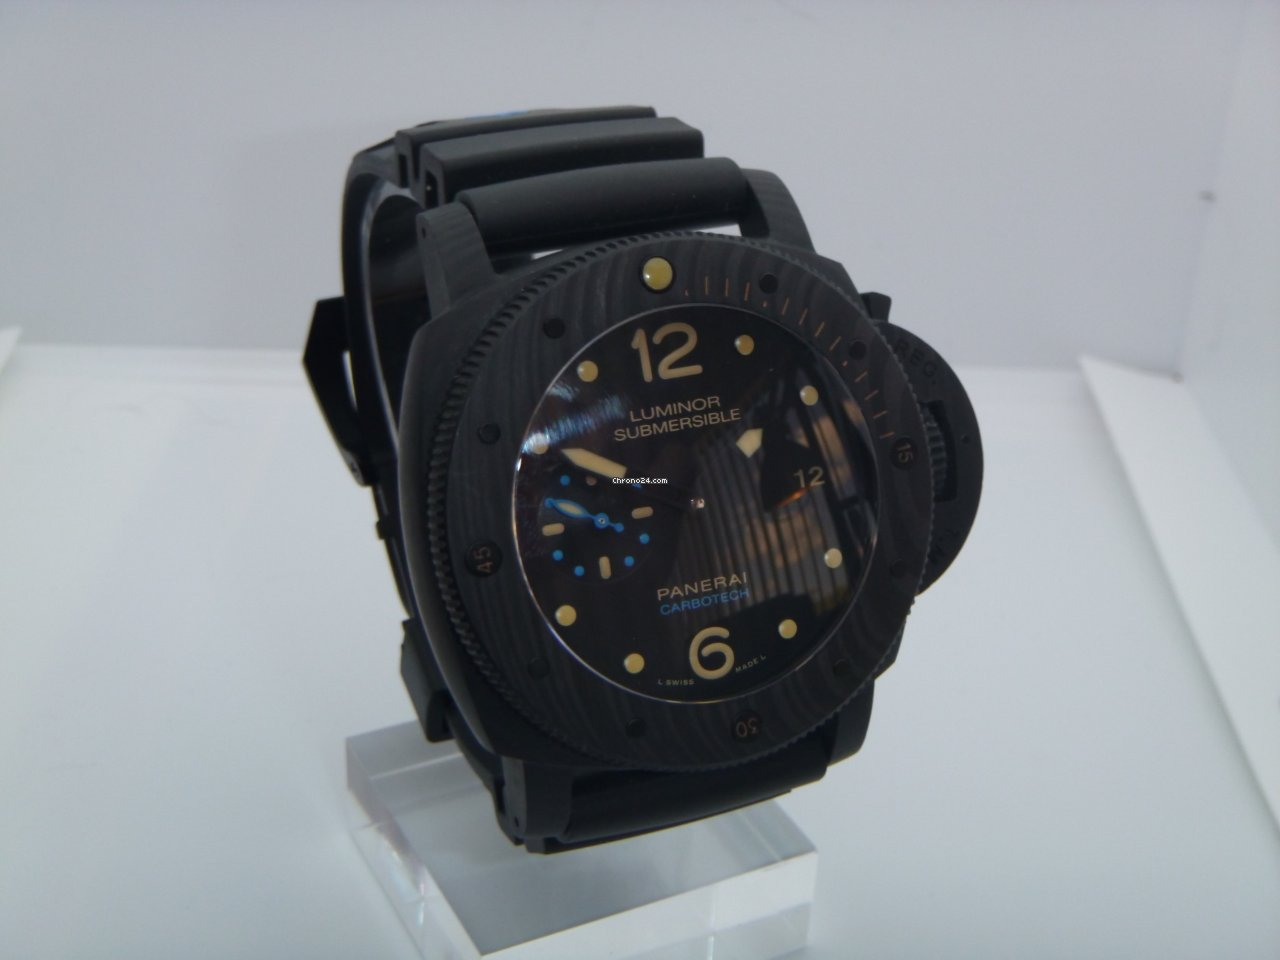 cf53818ec5b Panerai watches - all prices for Panerai watches on Chrono24